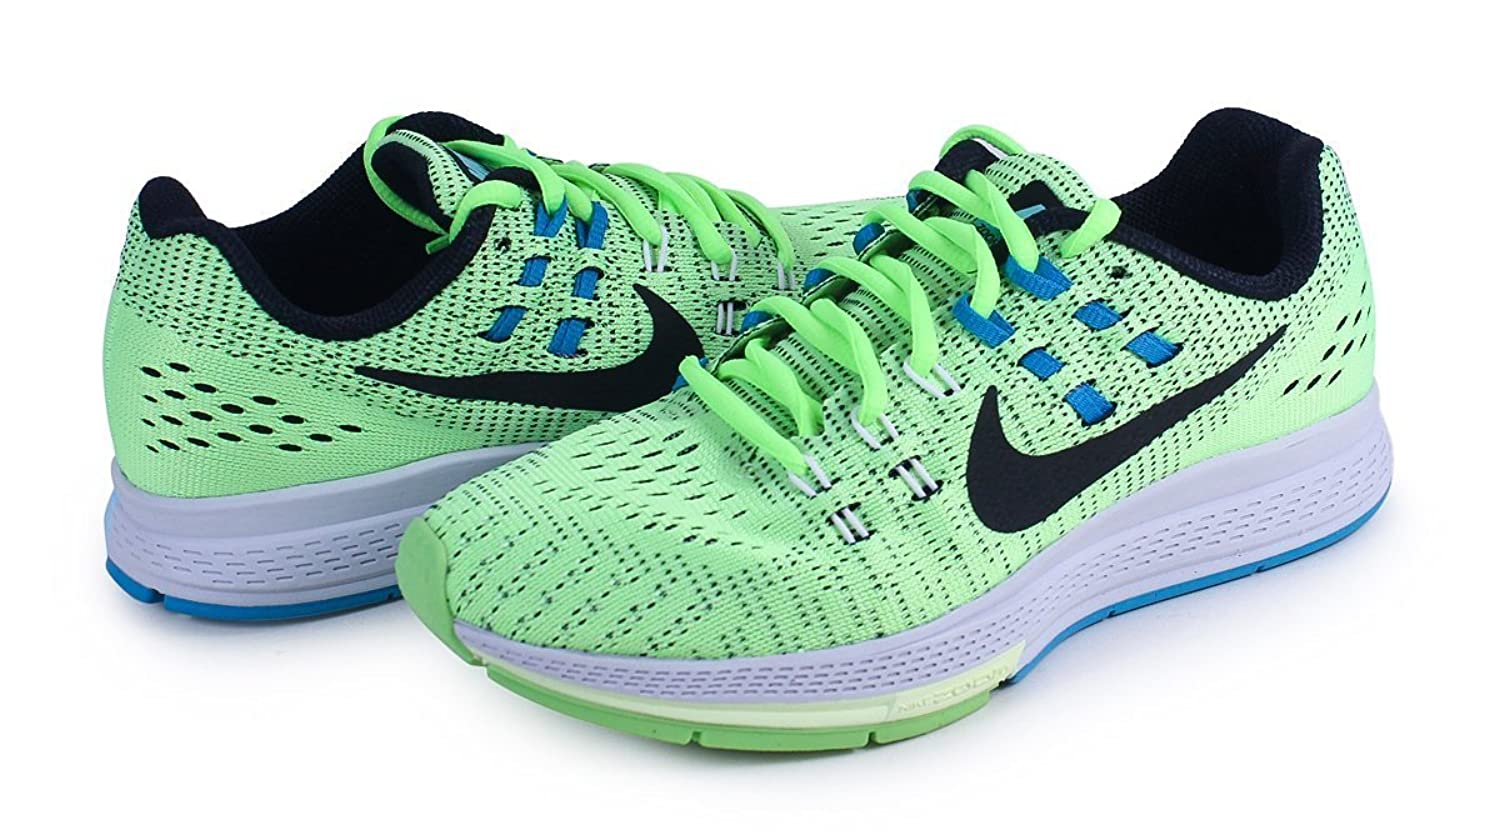 [806584-300] NIKE AIR ZOOM STUCTURE 19 WOMENS SNEAKERS NIKEGHOST GREEN BLACK WHITE BLLGN